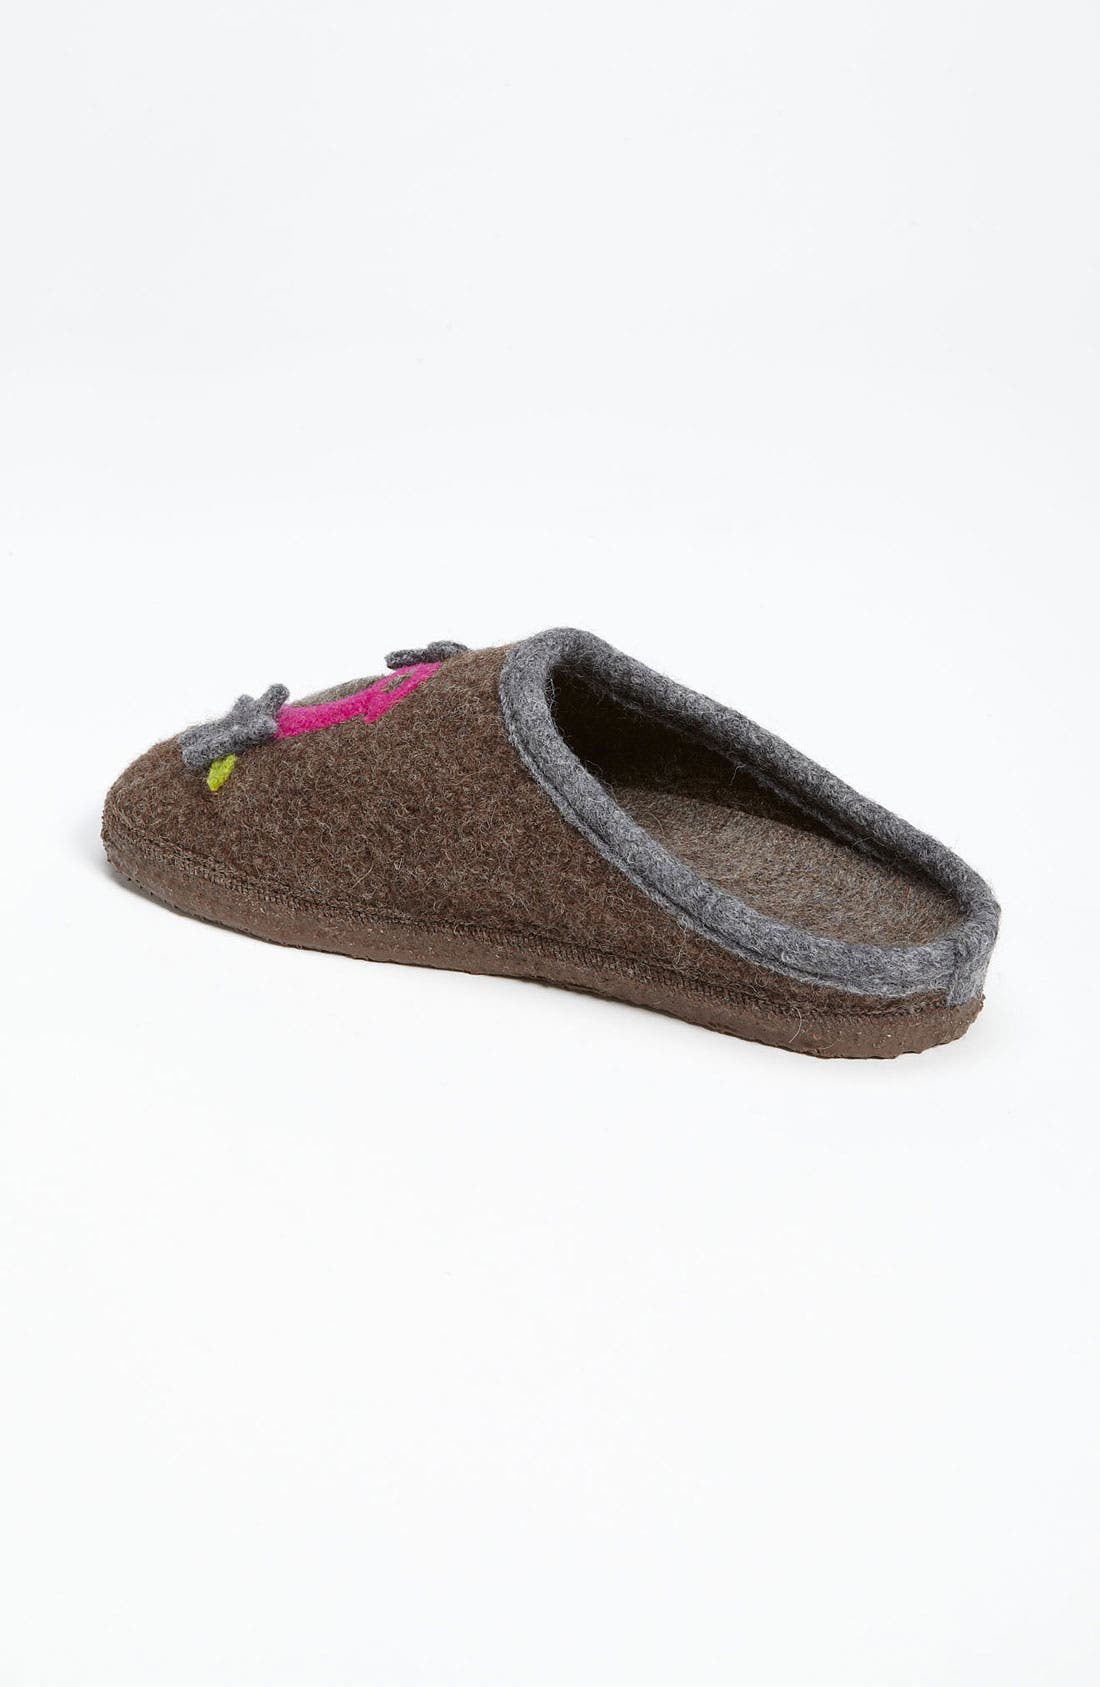 Alternate Image 2  - Giesswein 'Birdhouse' Wool Slipper